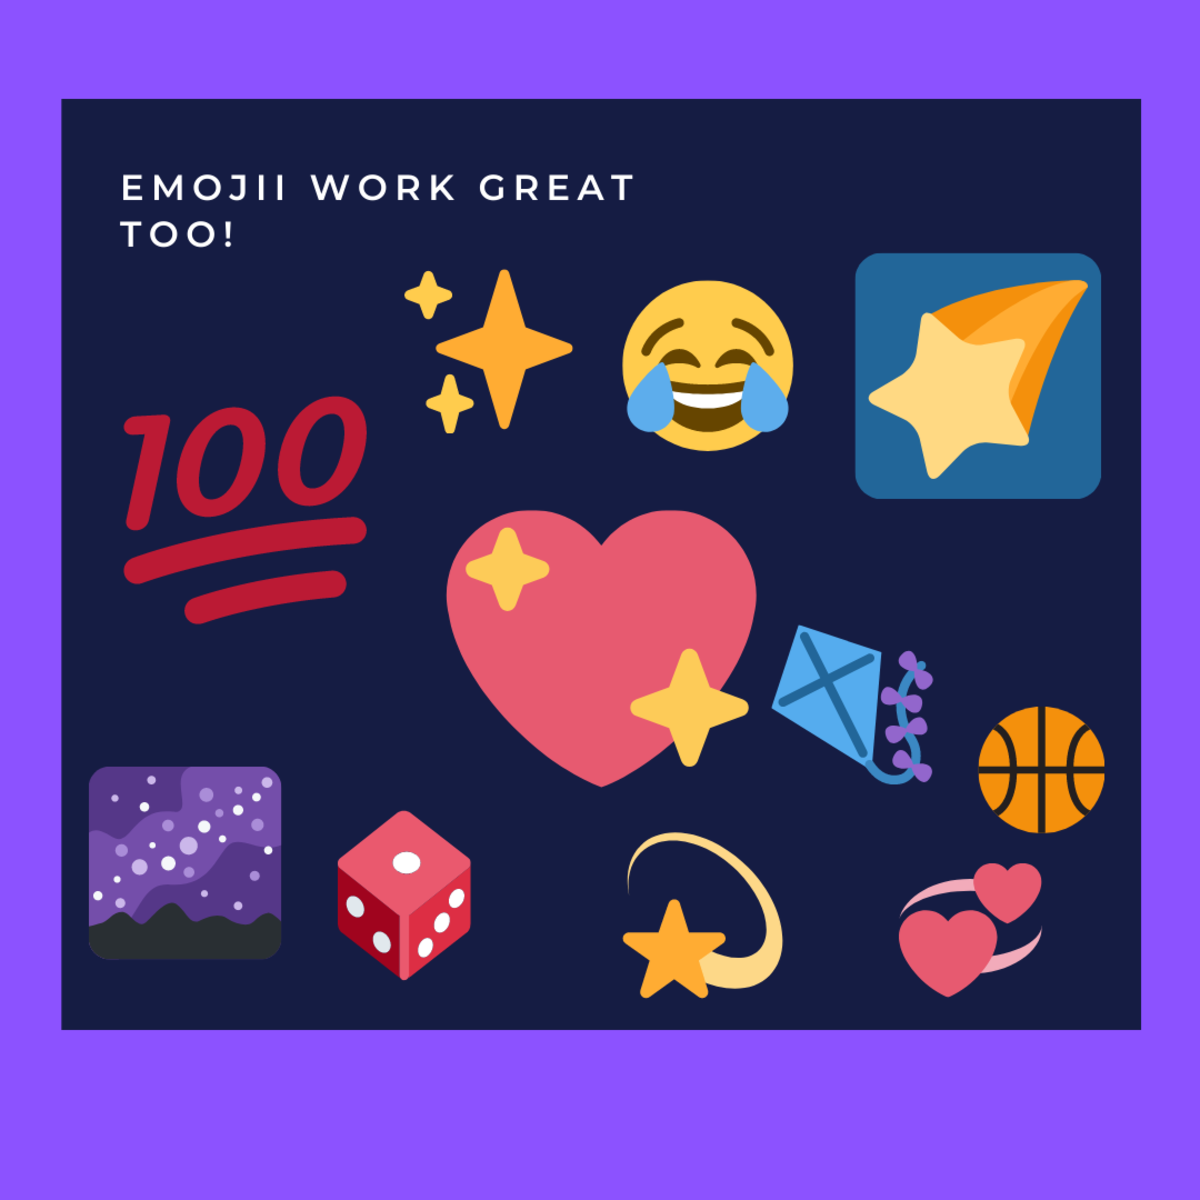 Some examples of cool emoji you could include with your server's name!